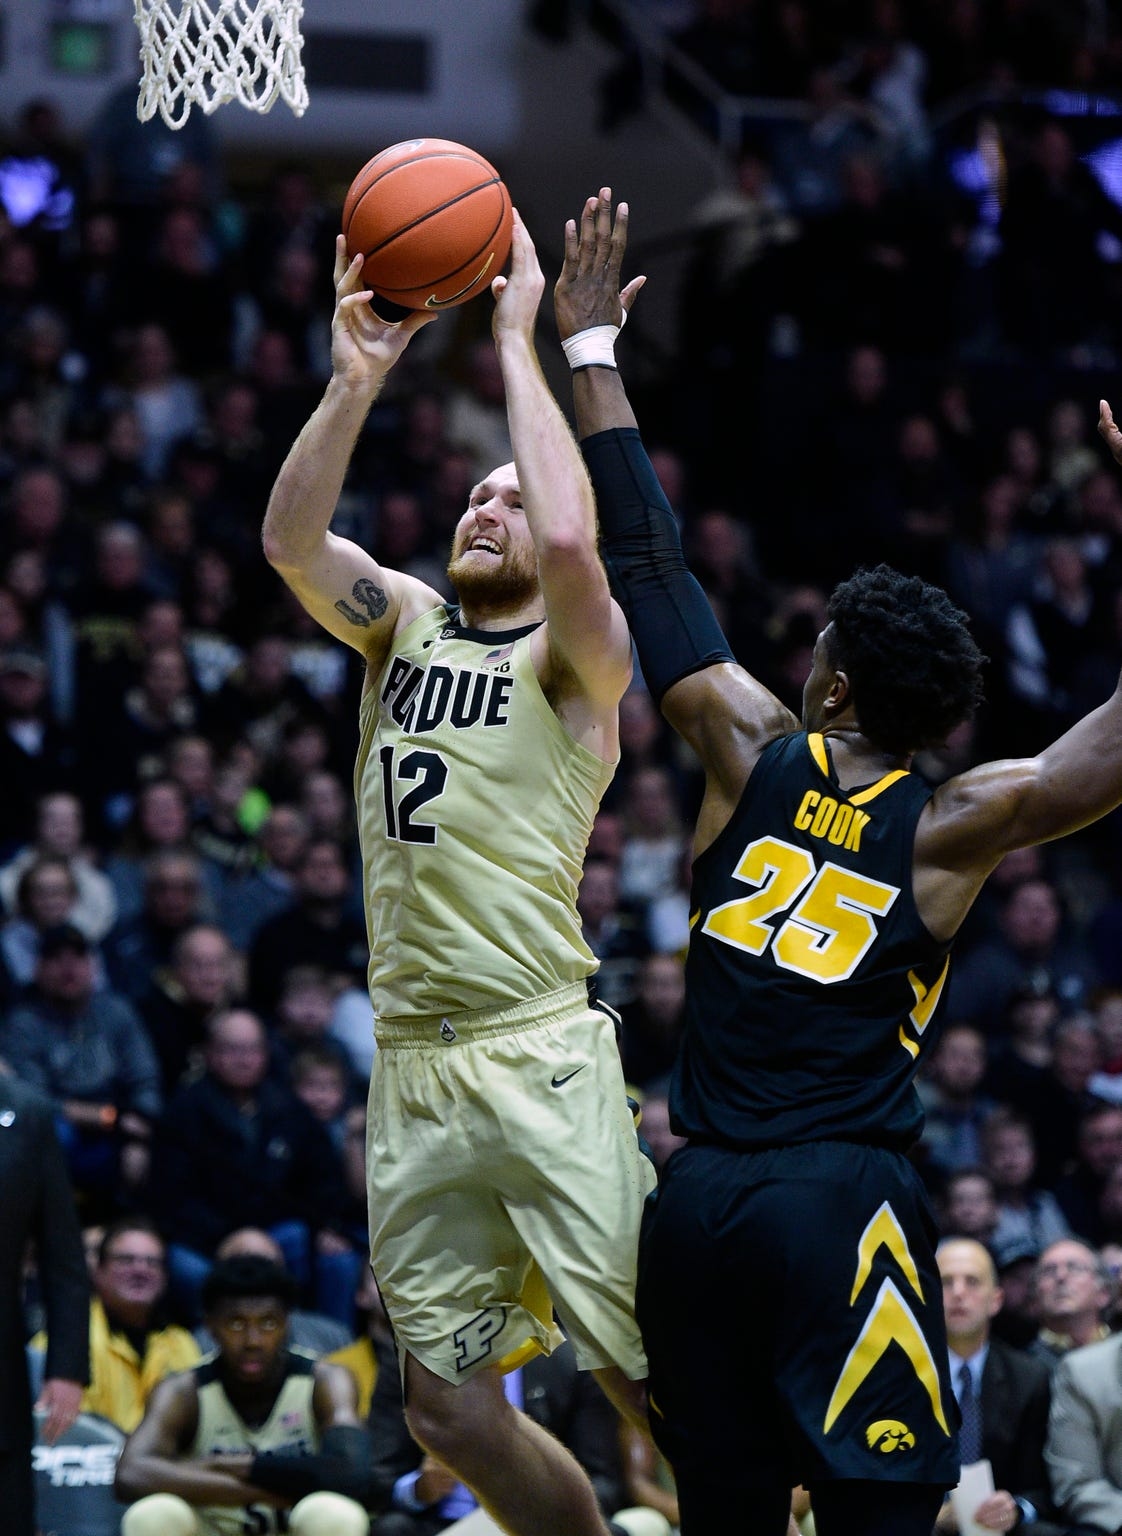 Jan 3, 2019; West Lafayette, IN, USA; Purdue Boilermakers   forward Evan Boudreaux (12) shoots a jumper over Iowa Hawkeyes guard Tyler Cook (25)  in the second half at Mackey Arena. Mandatory Credit: Thomas J. Russo-USA TODAY Sports